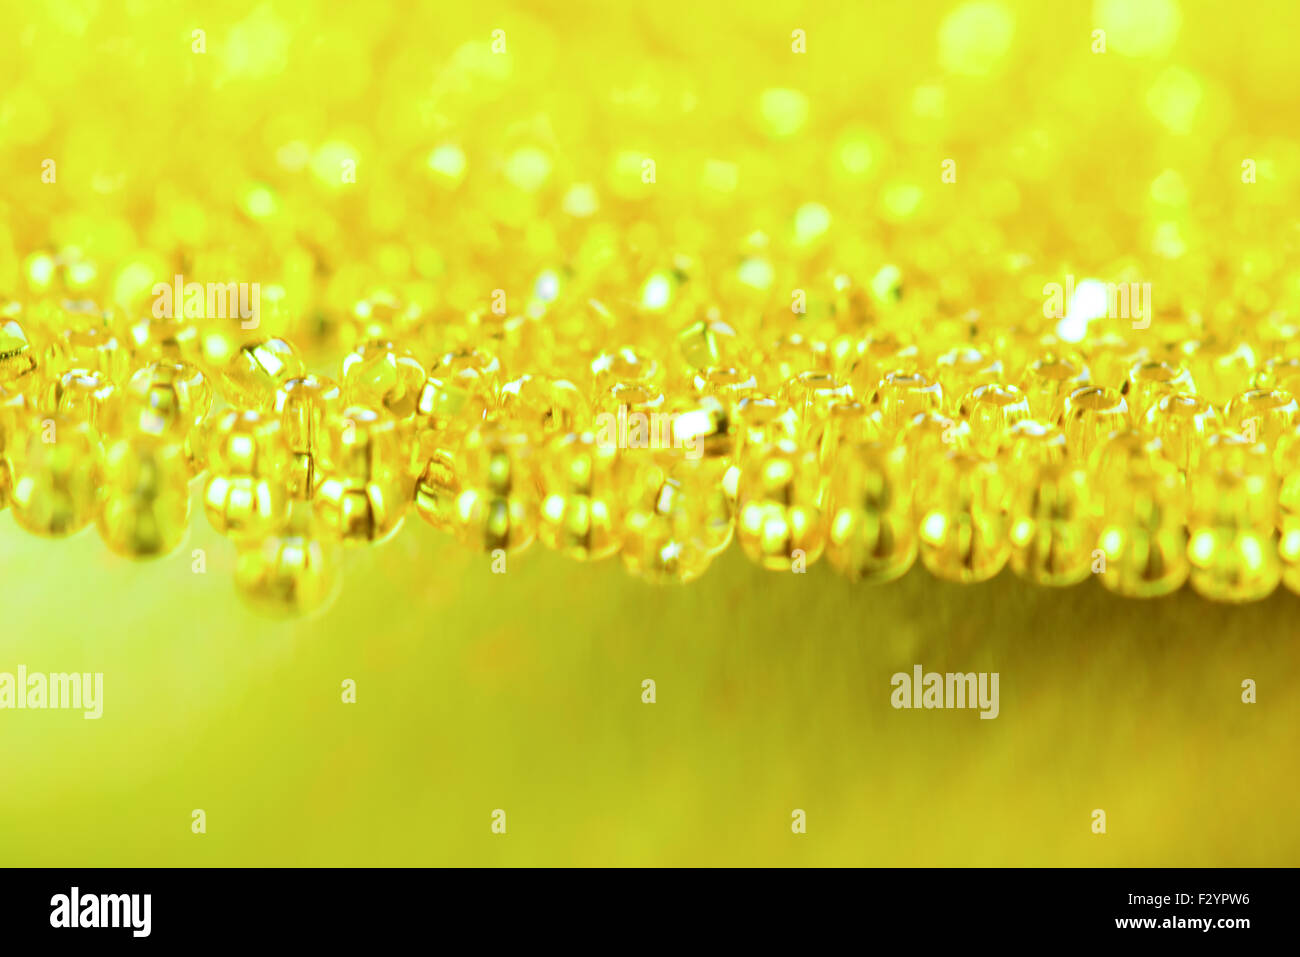 Yellow - green shine abstract background for your design - Stock Image